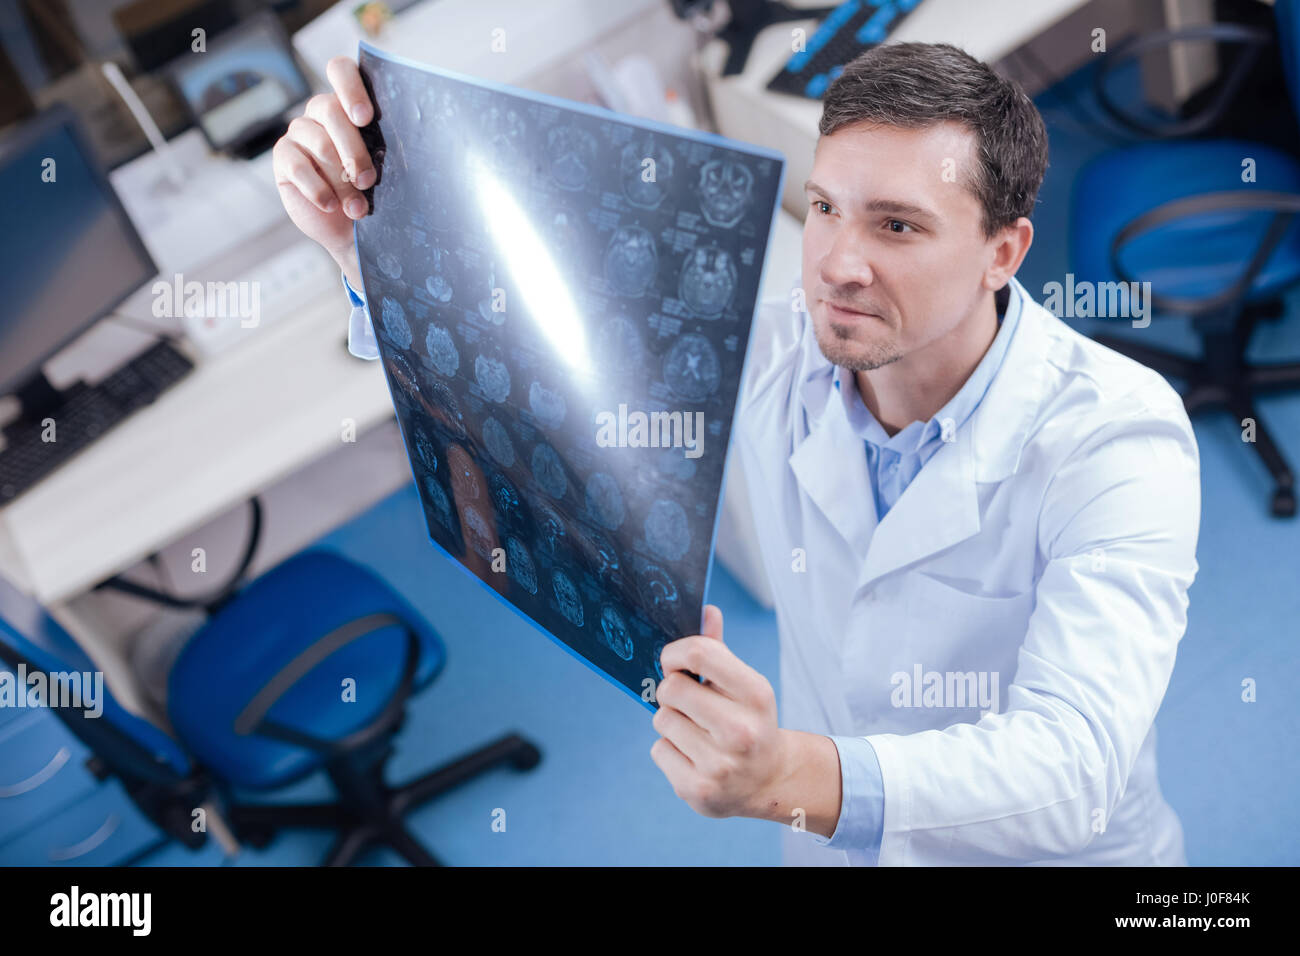 Handsome professional oncologist looking at the brain x ray images Stock Photo